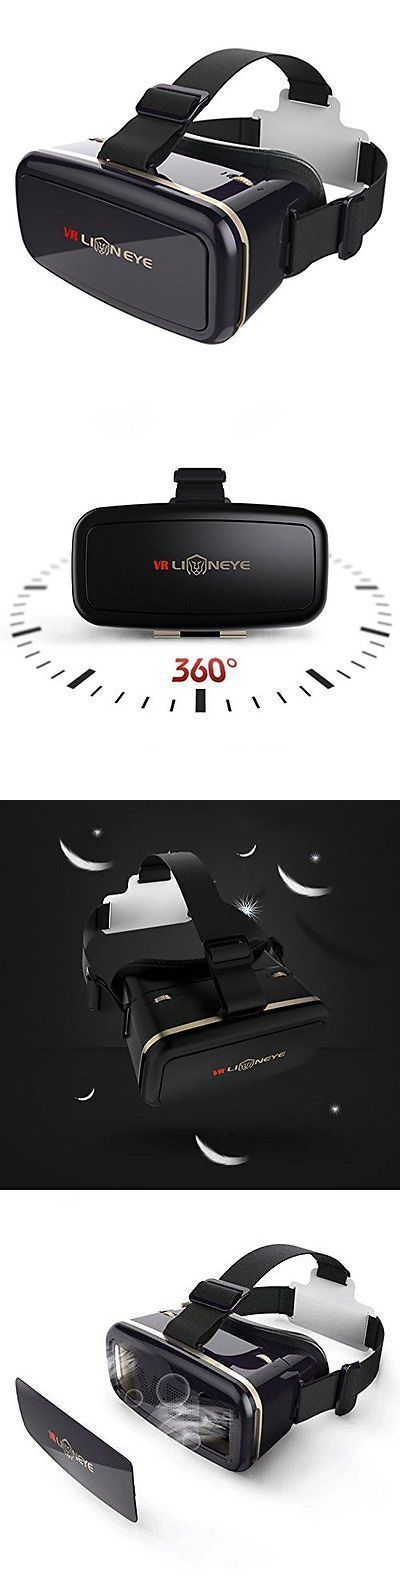 Smartphone VR Headsets: 3D Virtual Reality Headset 3D Glasses Mobile Phone For Iphone Samsung And Galaxy BUY IT NOW ONLY: $40.07 #virtualreality